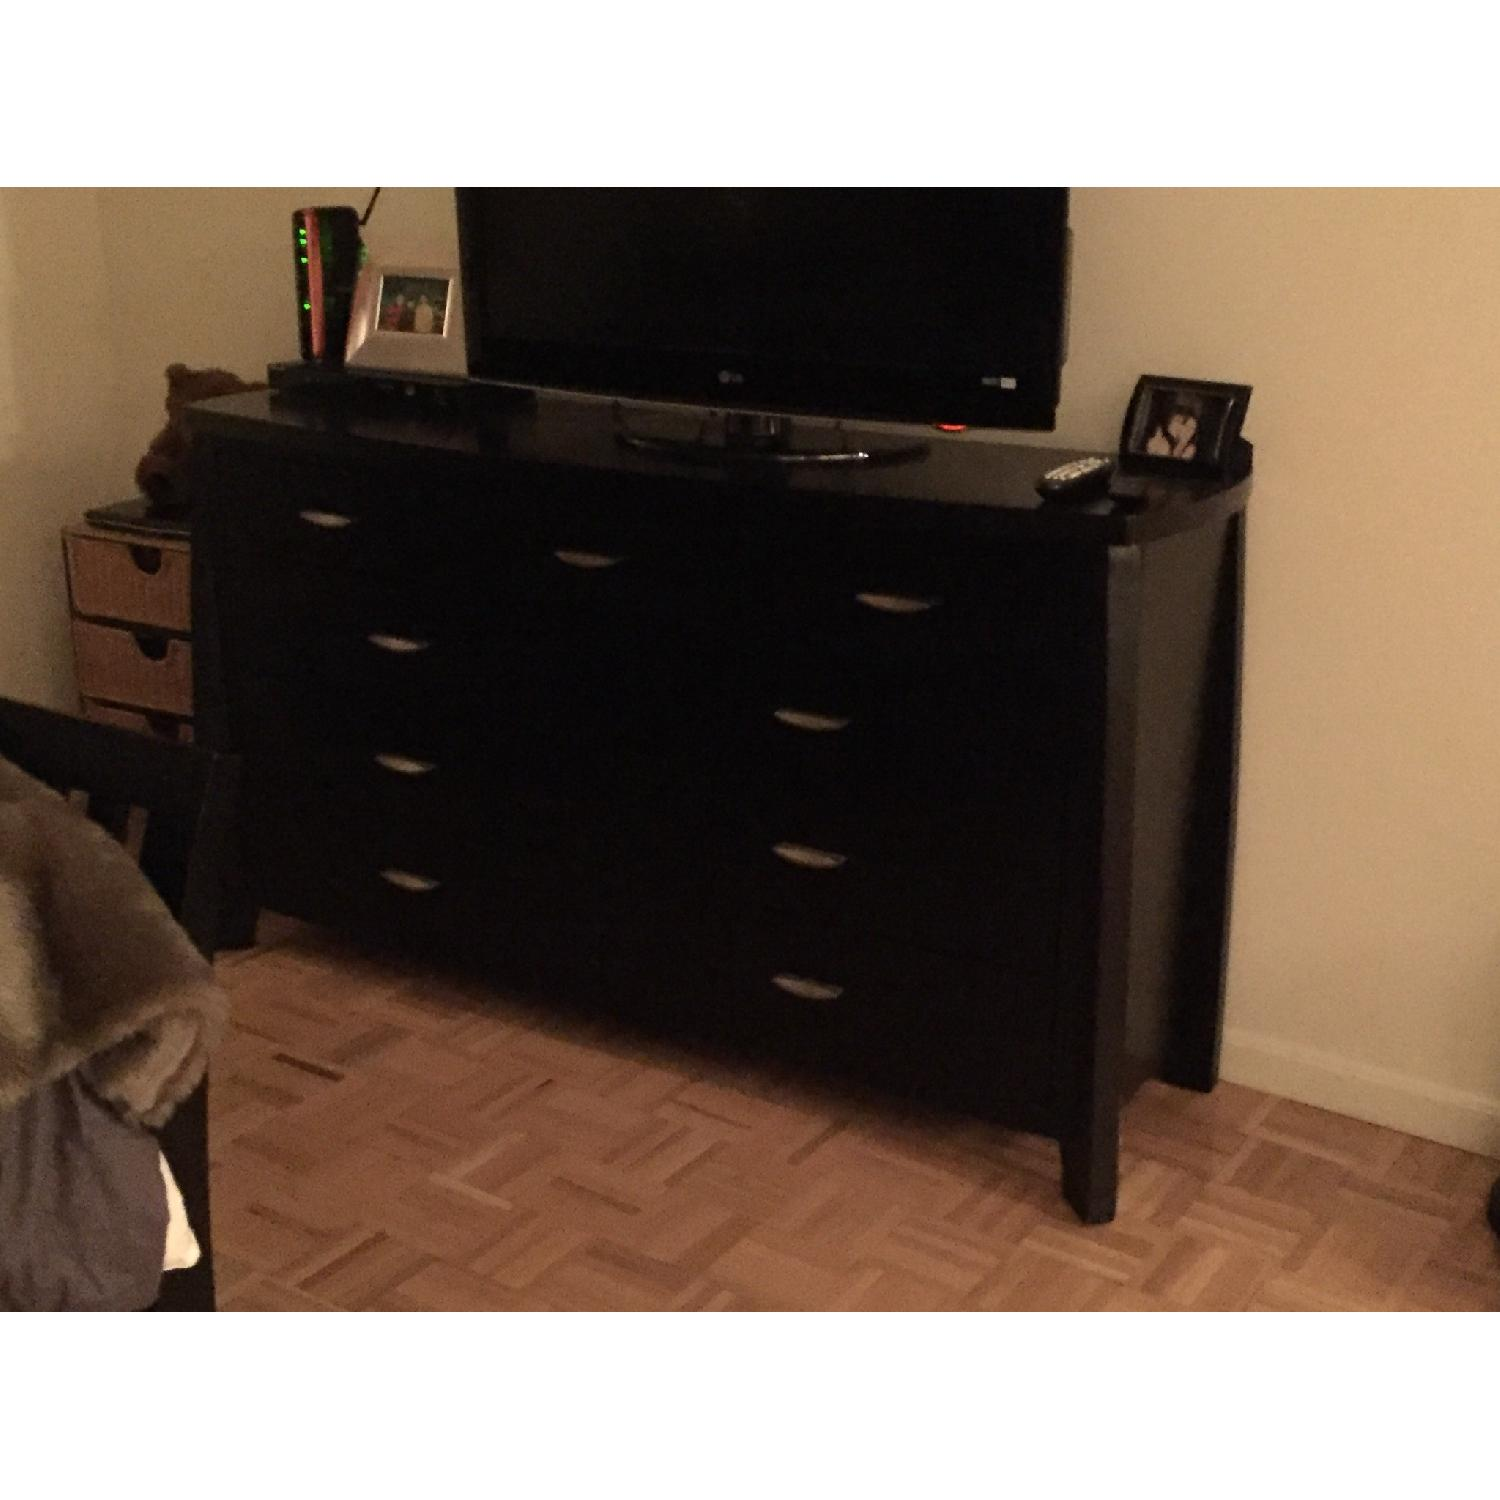 Rooms To Go Black Wood Dresser - image-3